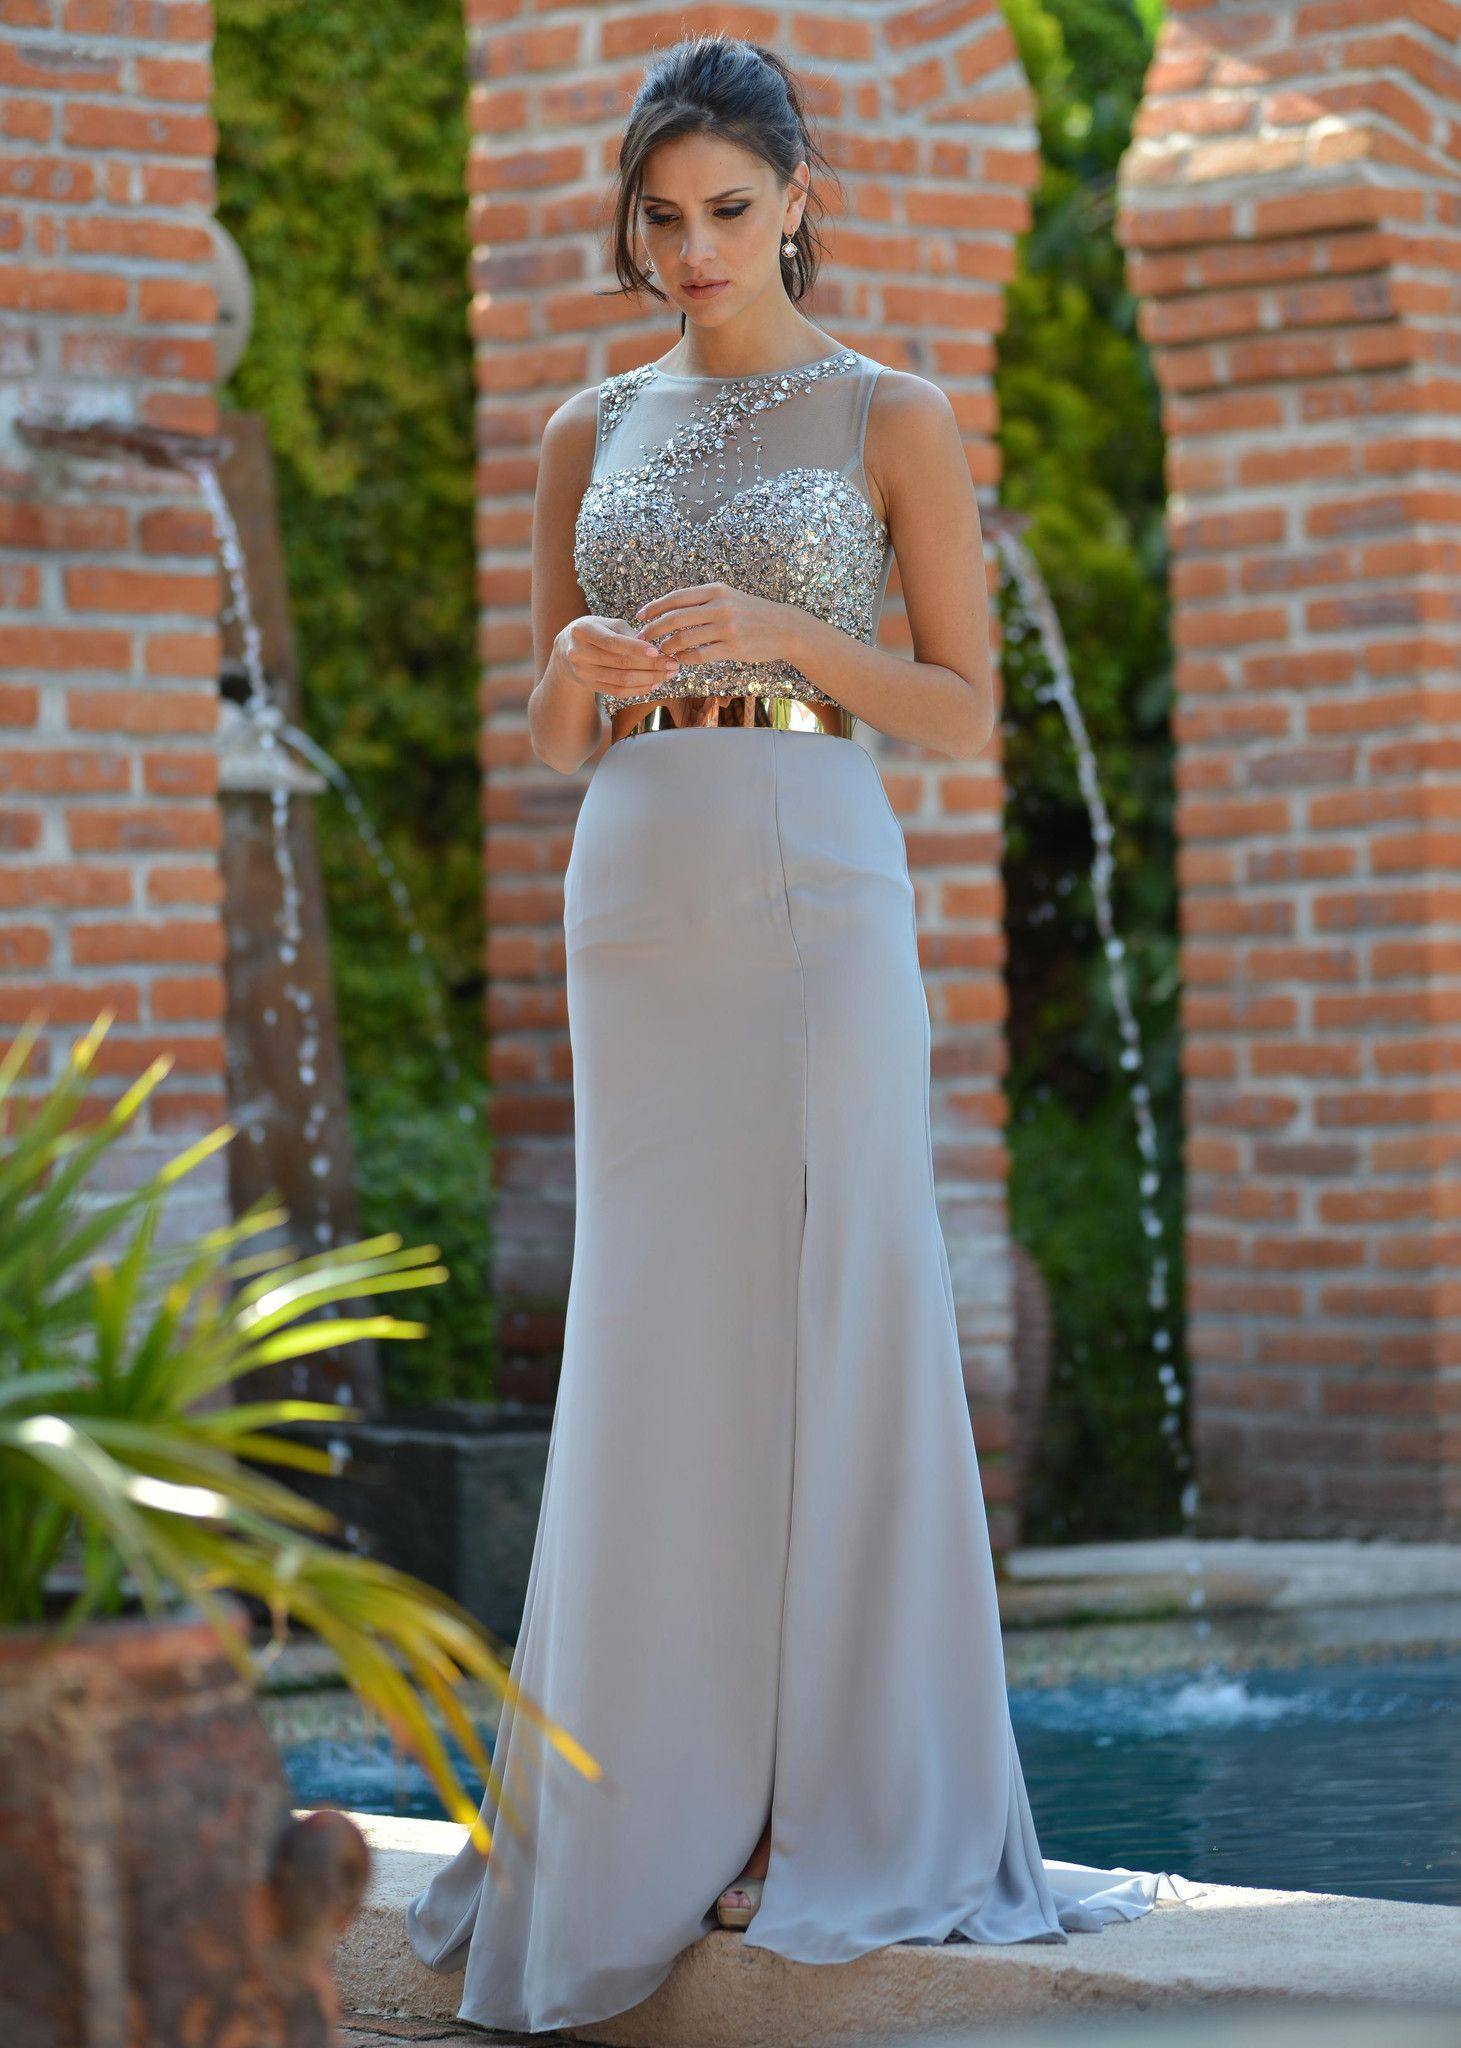 And ice silver bridesmaid dress if it was navy blue and ice silver - Colors 1449 Silver Beaded Prom Dress Bridesmaid Evening Gown This Elegant Silver Chiffon Belted